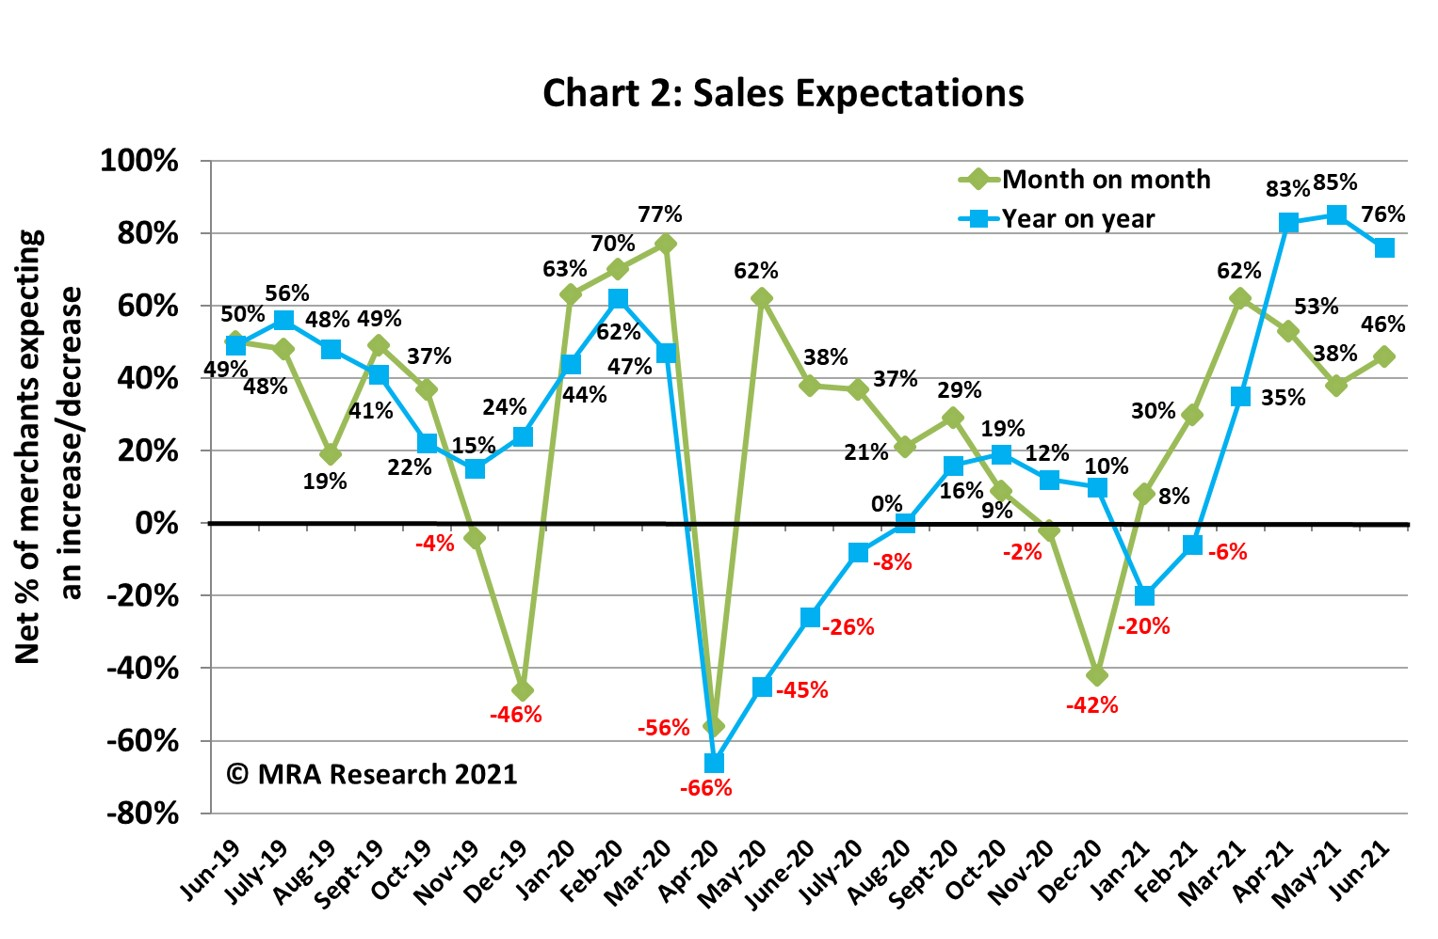 Sales expectations increased in June compared to May, with a net +46% of merchants forecasting improved sales